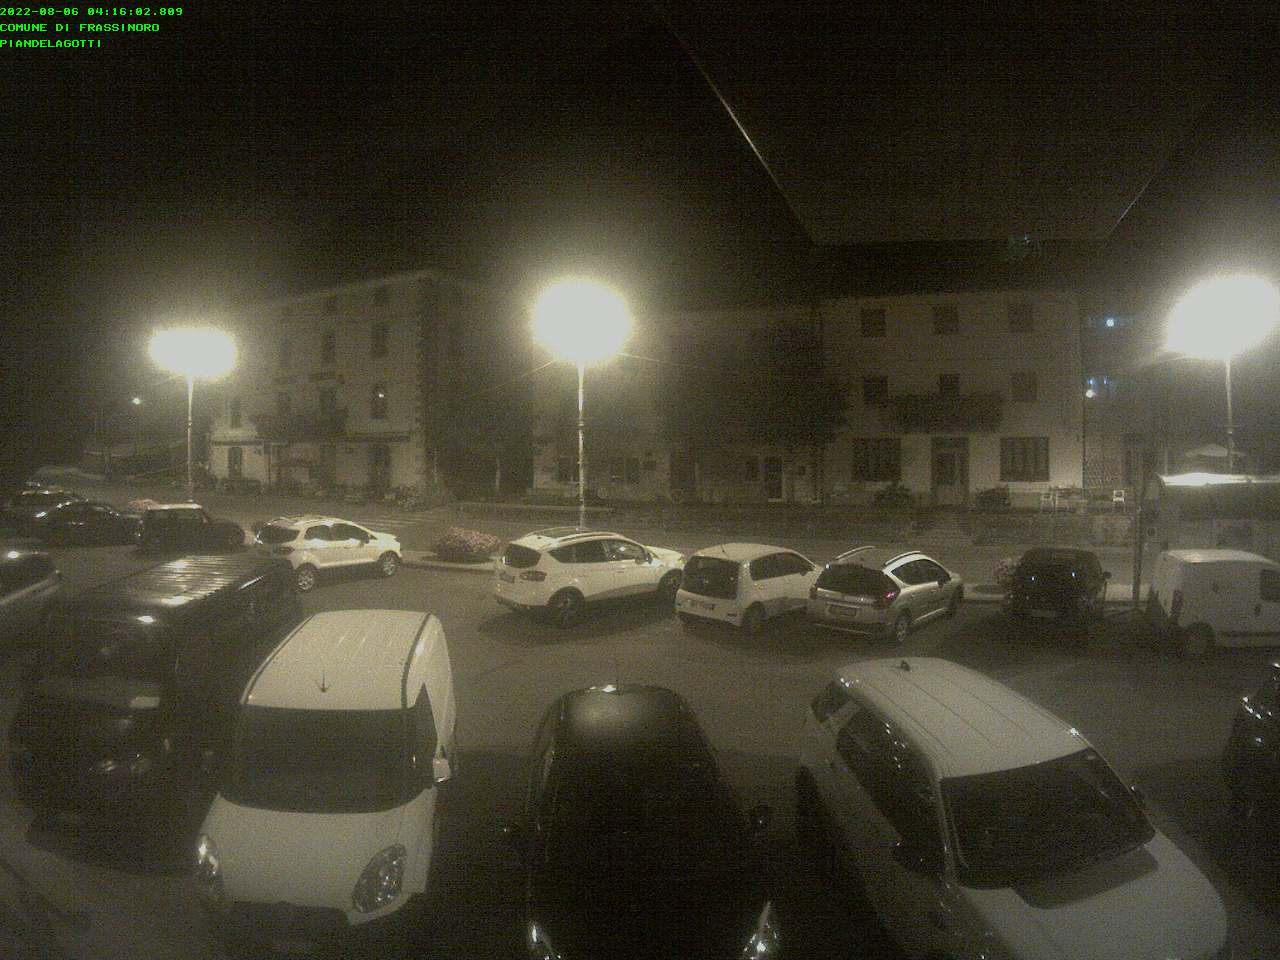 webcam frassinoro n. 48350